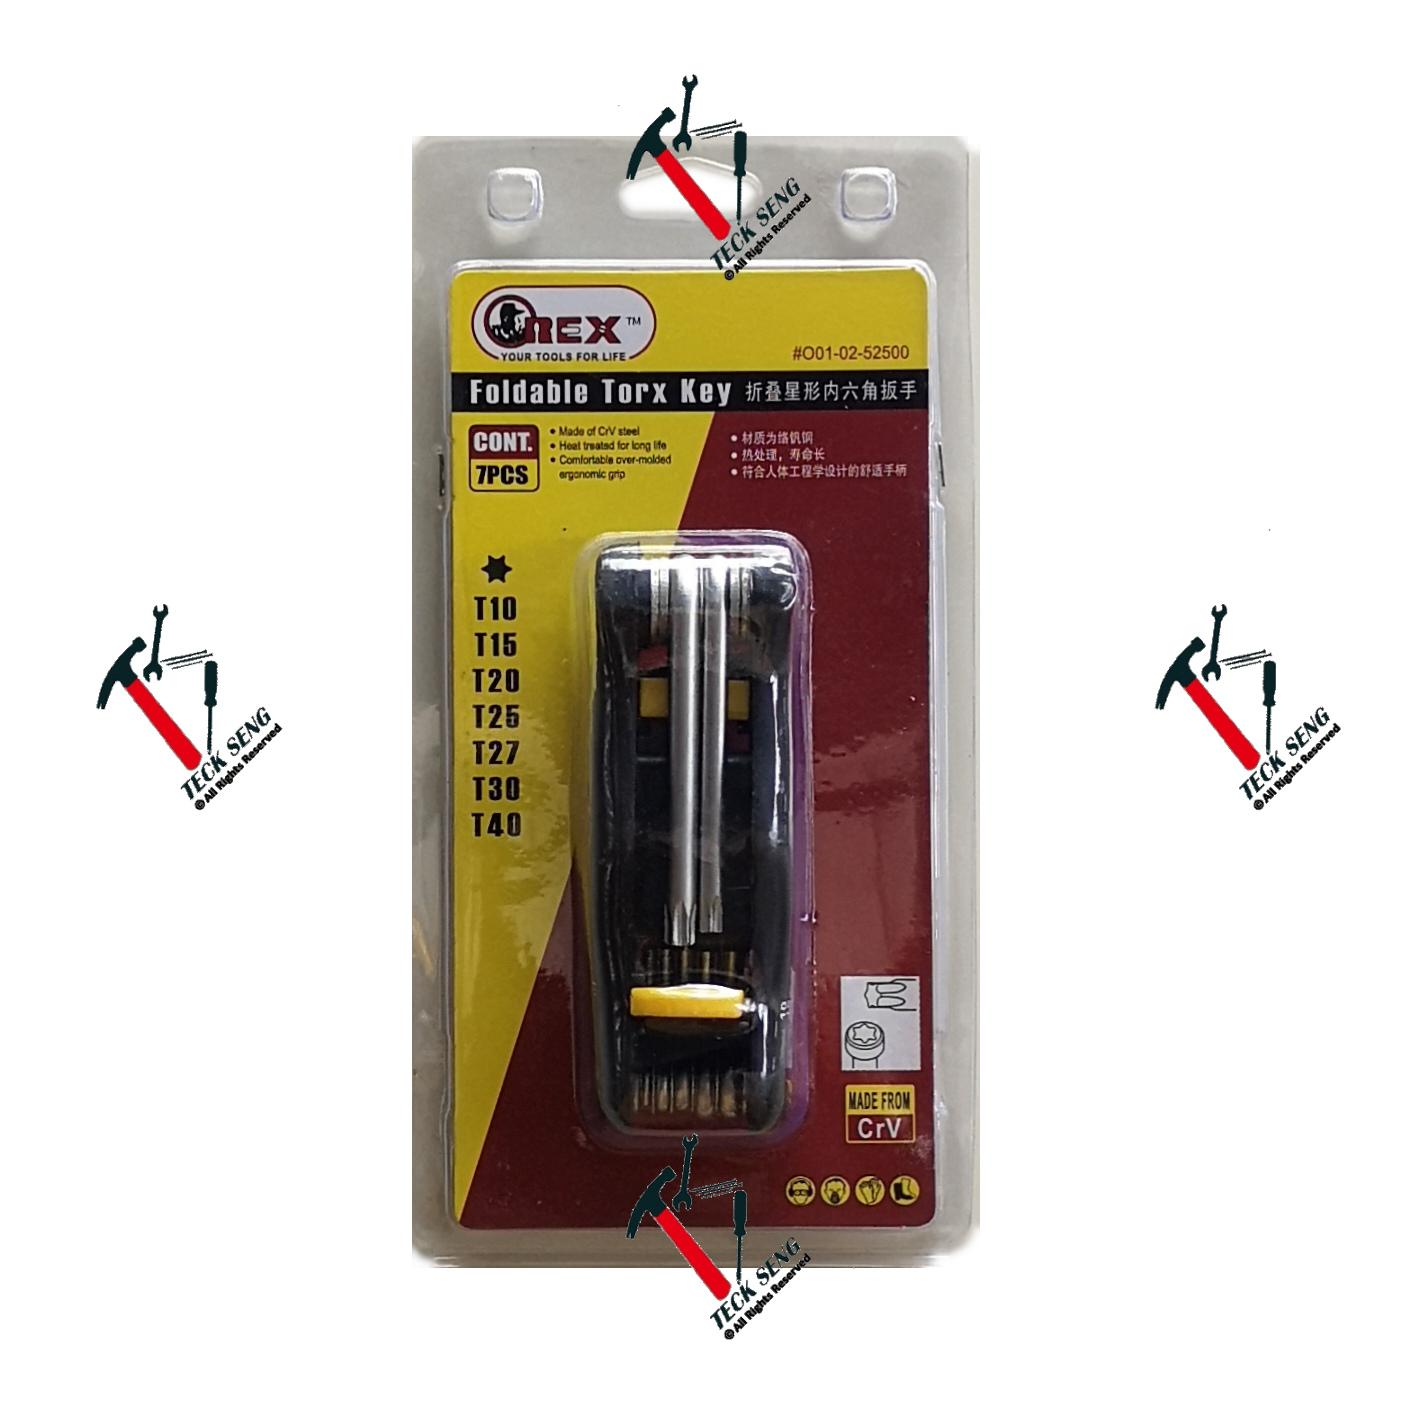 OREX Foldable Torx Key